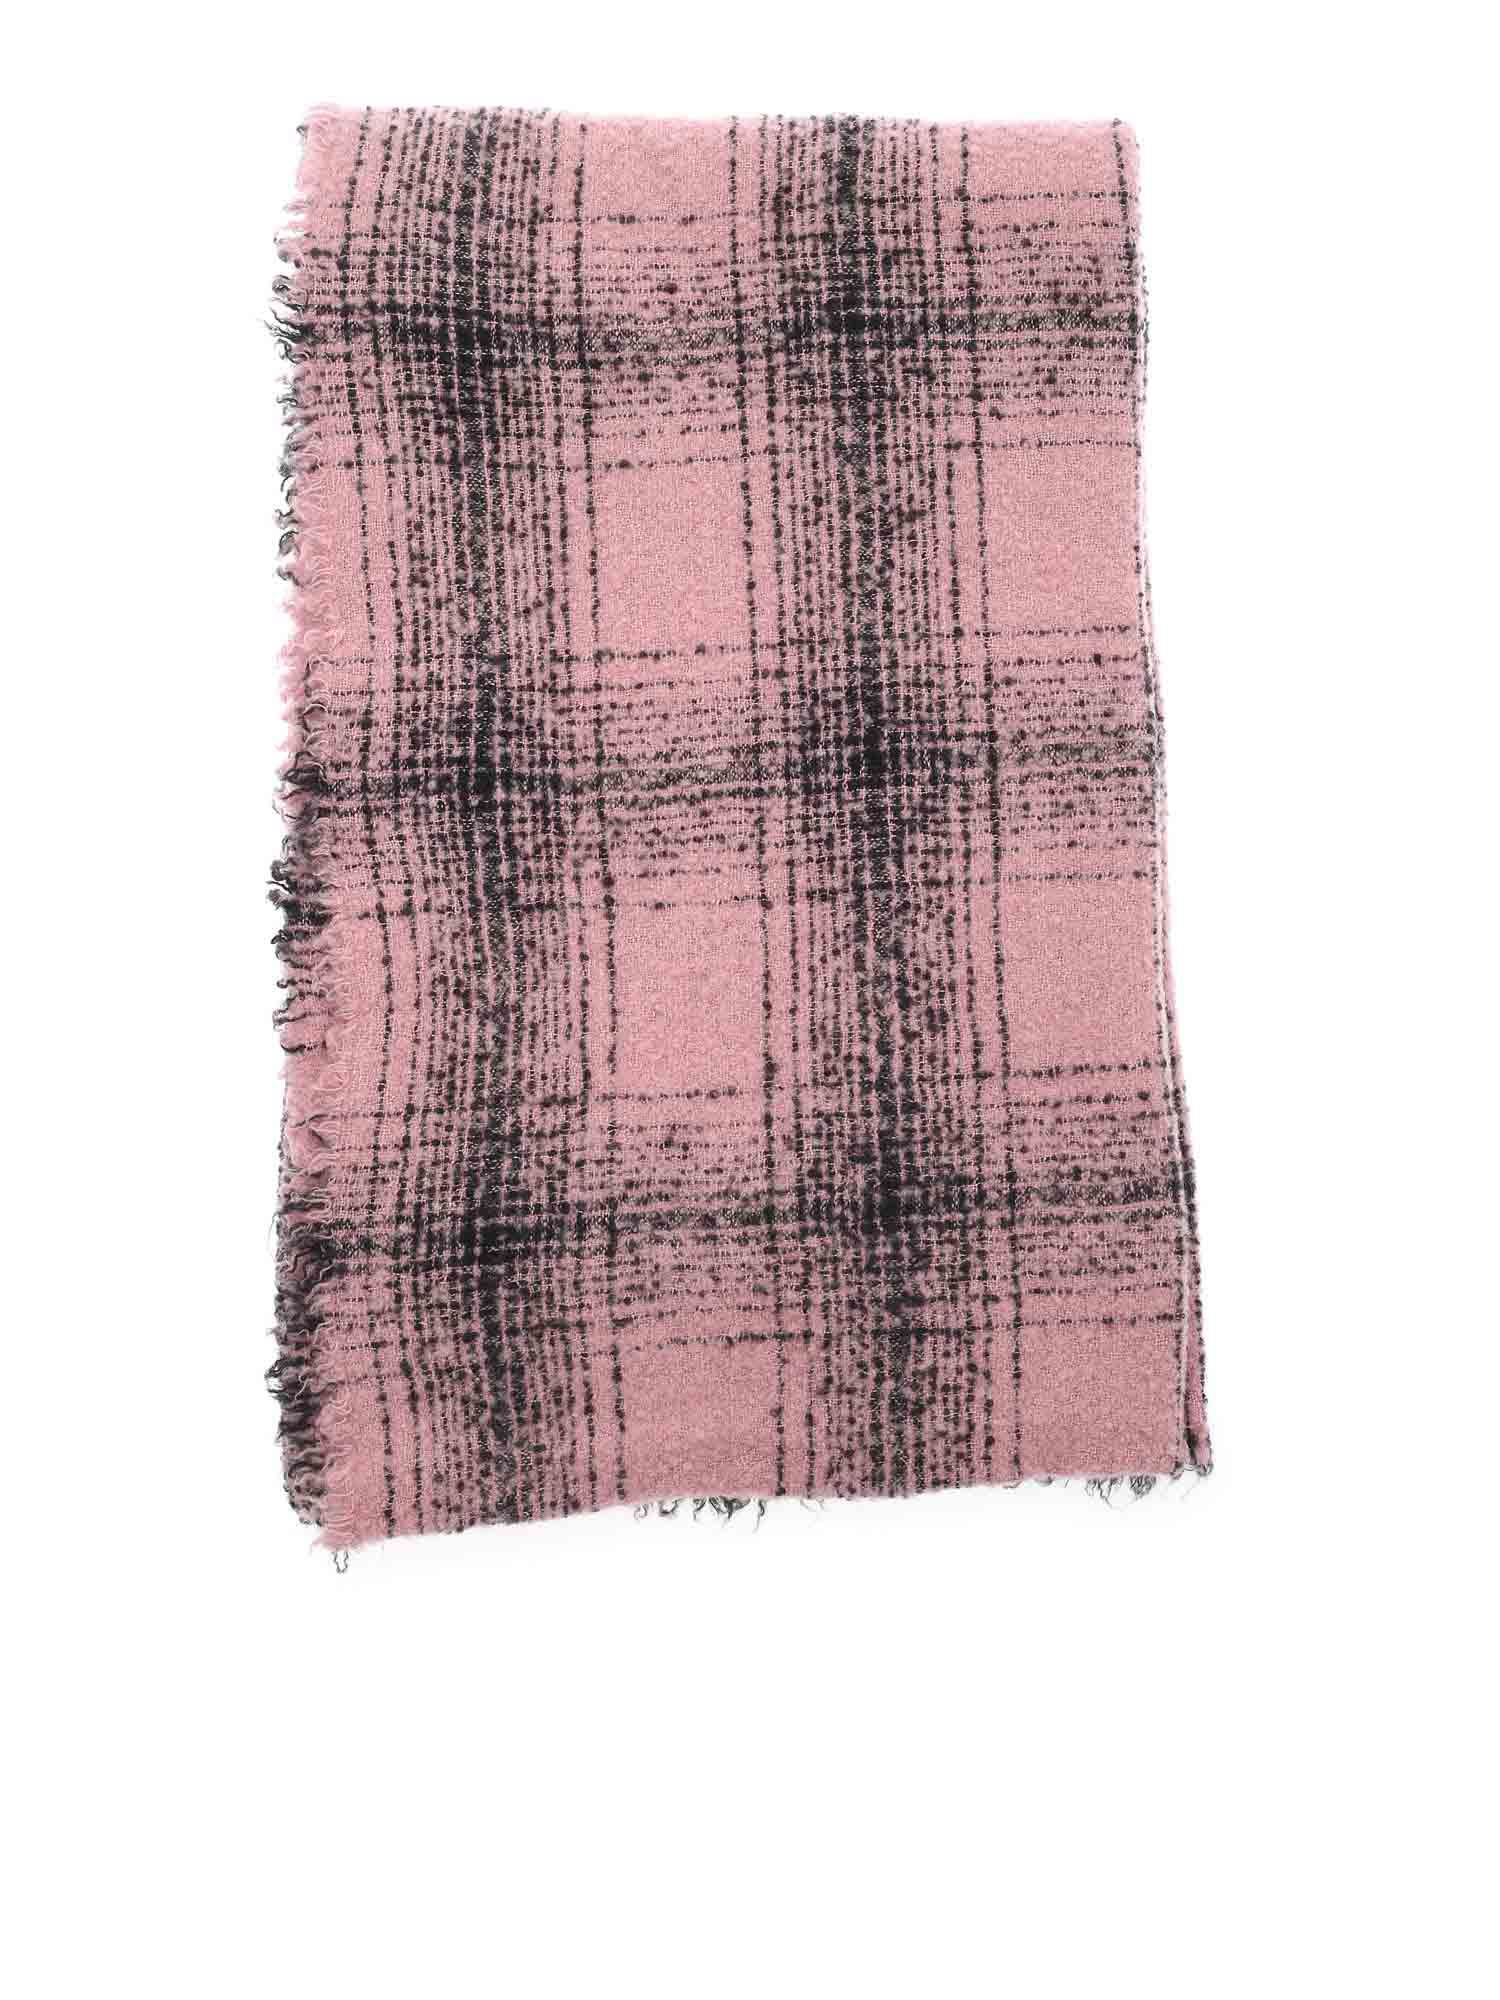 Faliero Sarti MILA CHECKED SCARF IN PINK AND BLACK